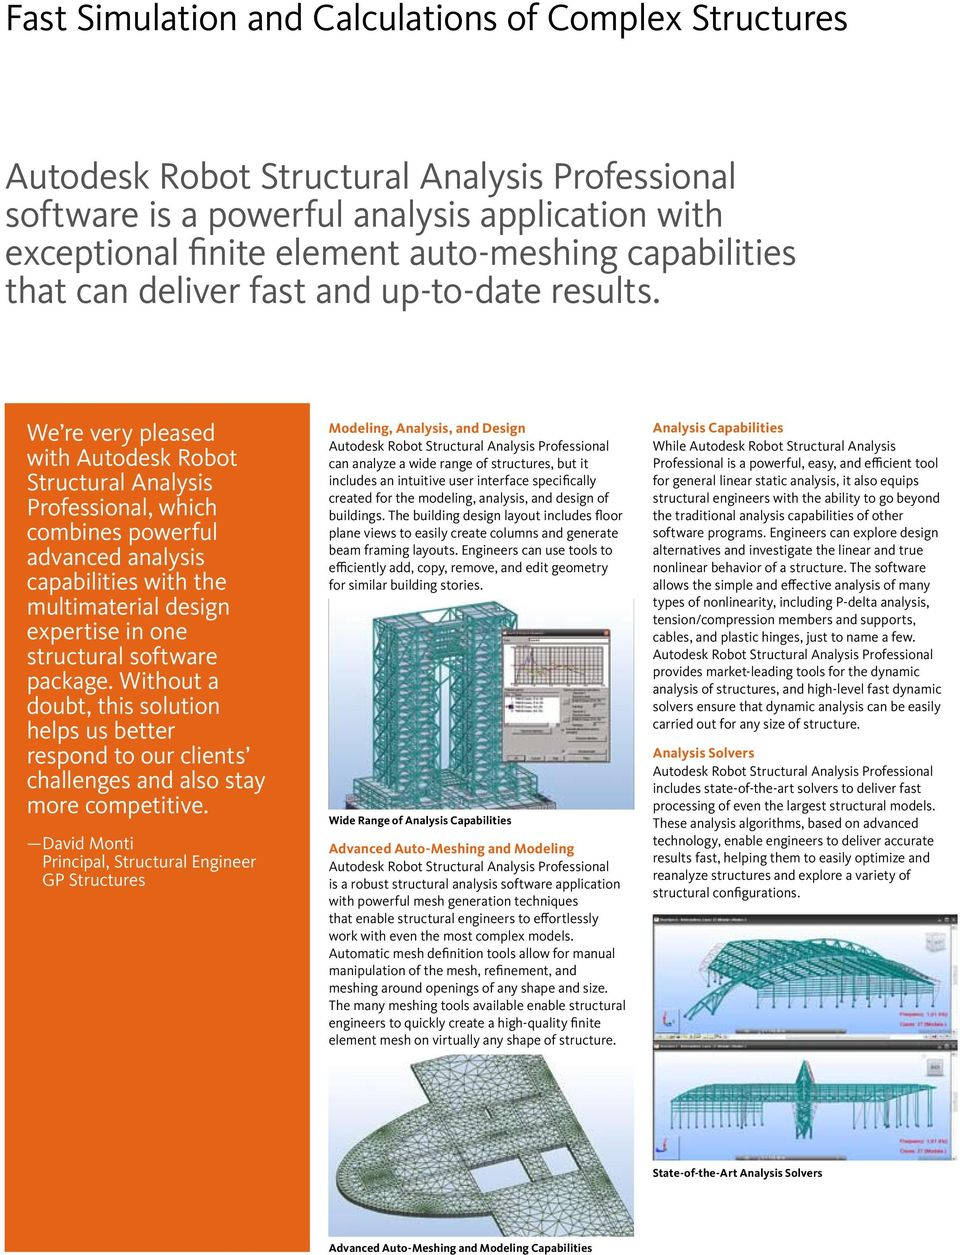 We re very pleased with Autodesk Robot Structural Analysis Professional, which combines powerful advanced analysis capabilities with the multimaterial design expertise in one structural software